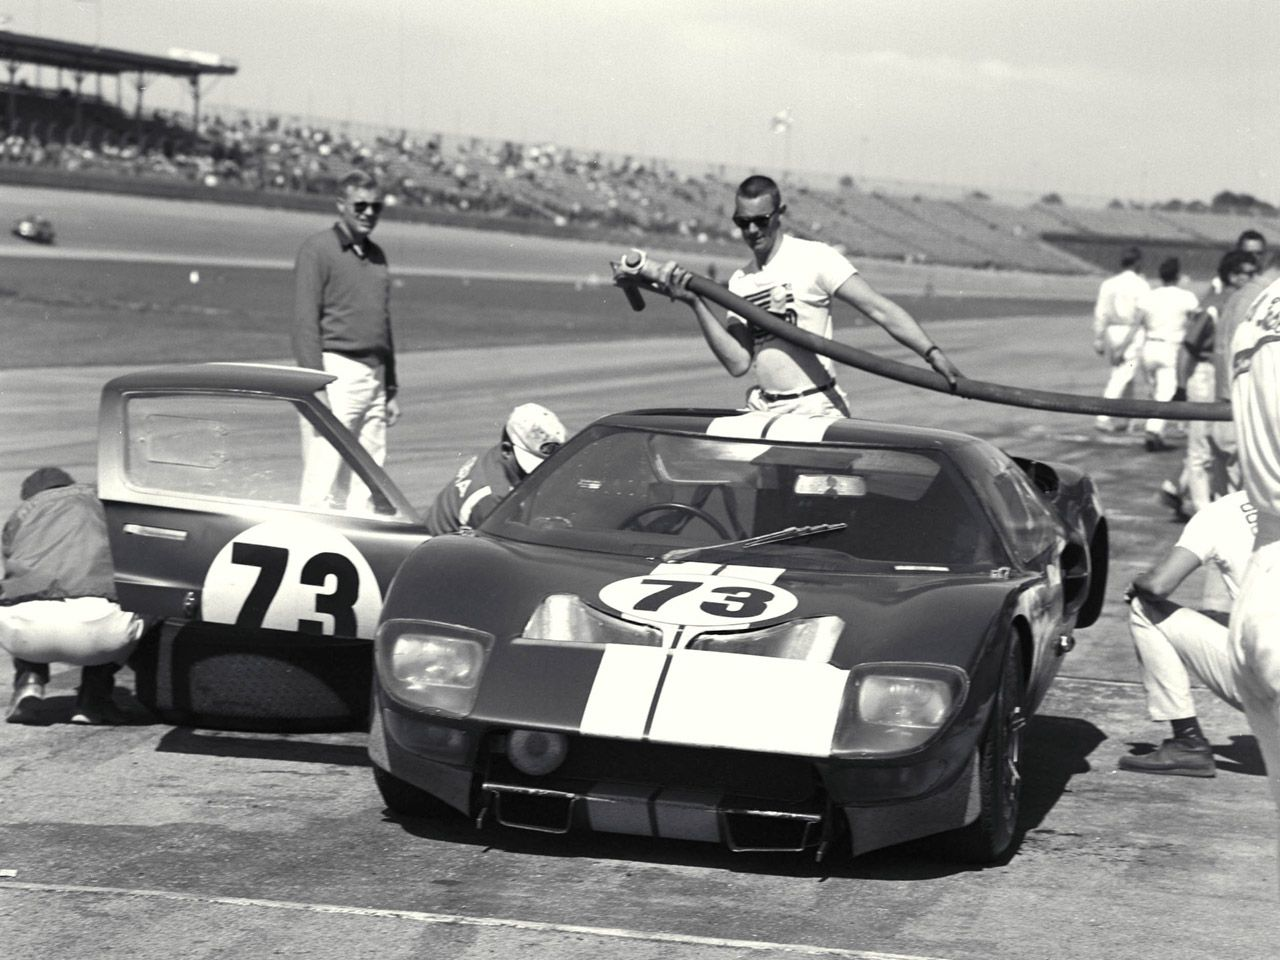 Ford Gt40 Daytona 1965 Ford Gt40 Ford Gt Ford Racing